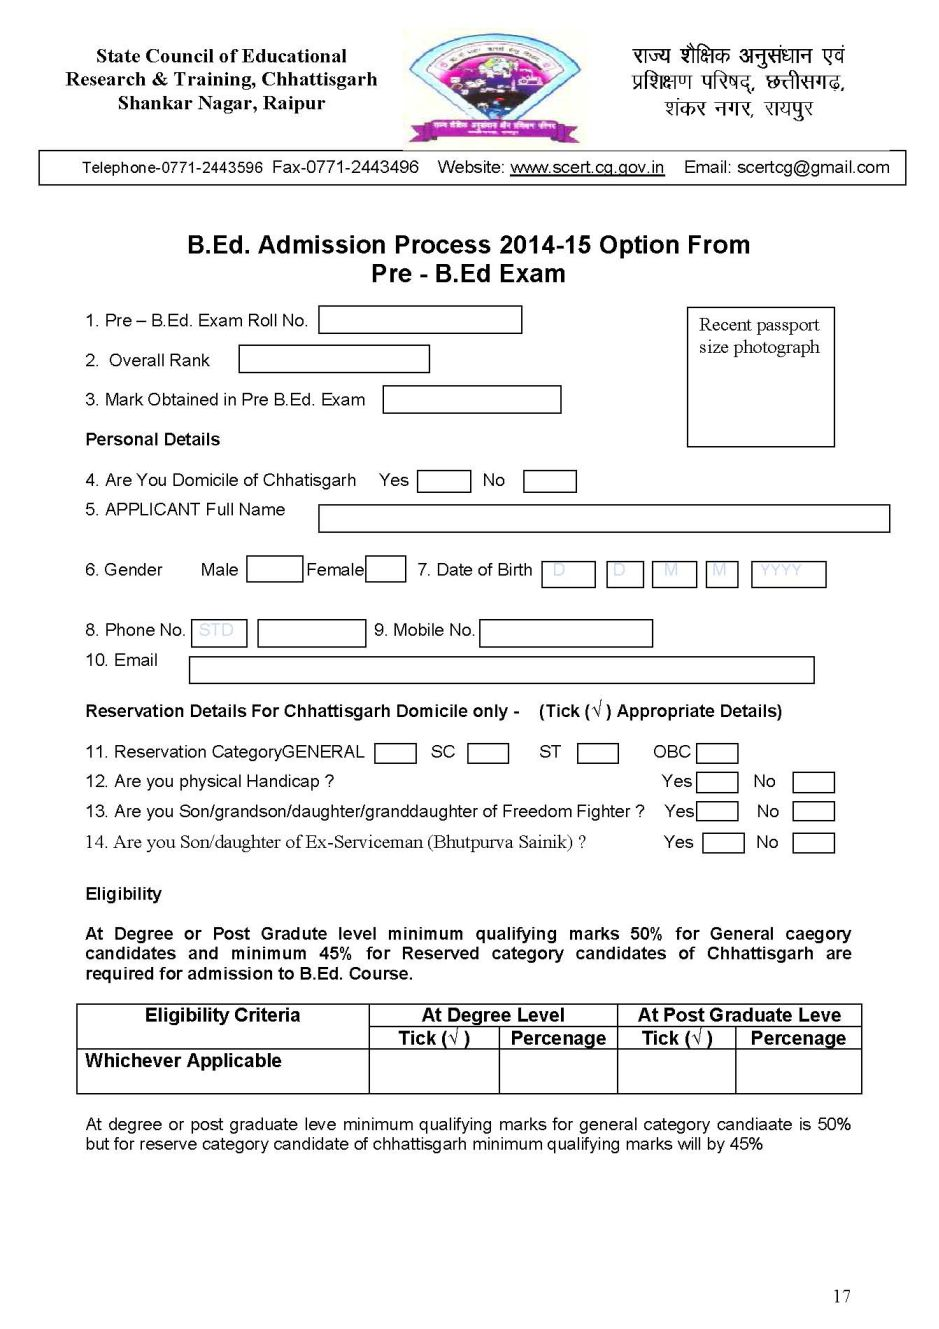 B.Ed Application form in Chhattisgarh - 2017 2018 Student Forum